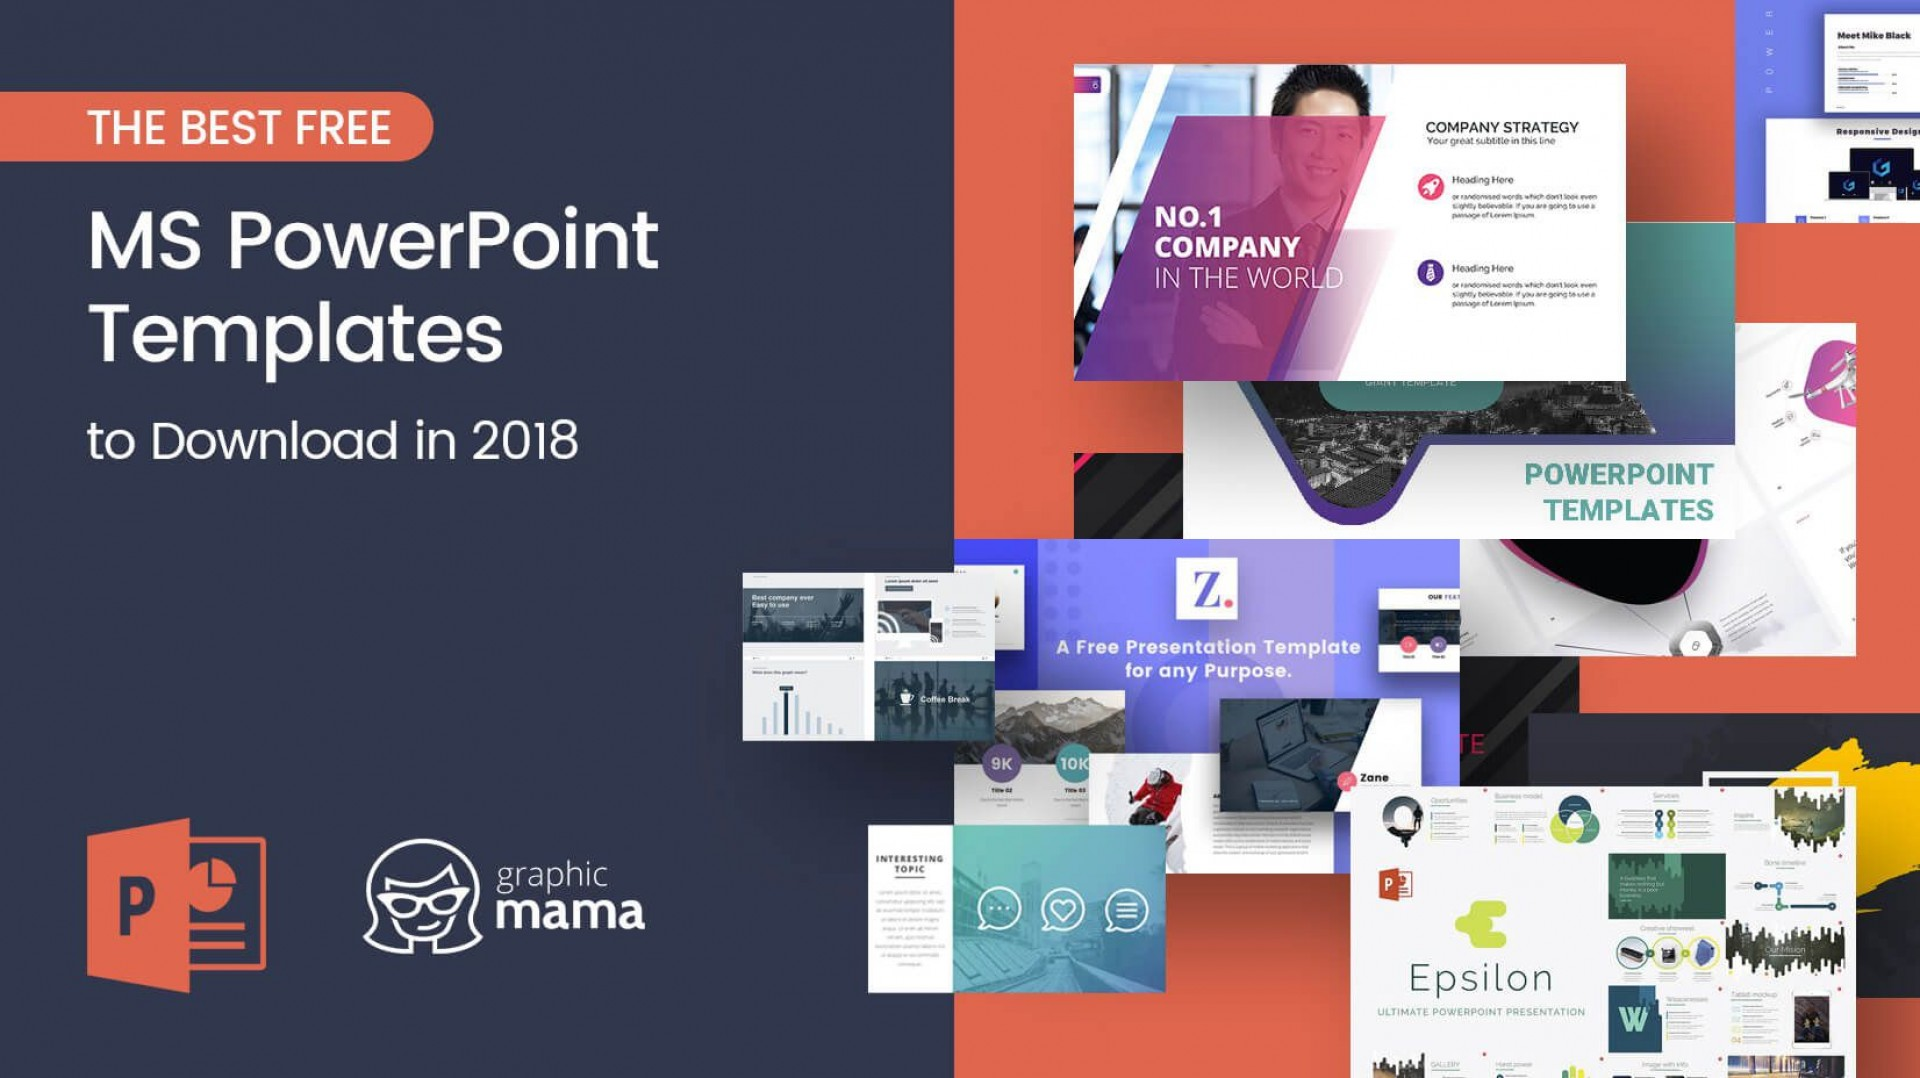 008 Exceptional Professional Ppt Template Free Download High Resolution  For Project Presentation Powerpoint Thesi1920